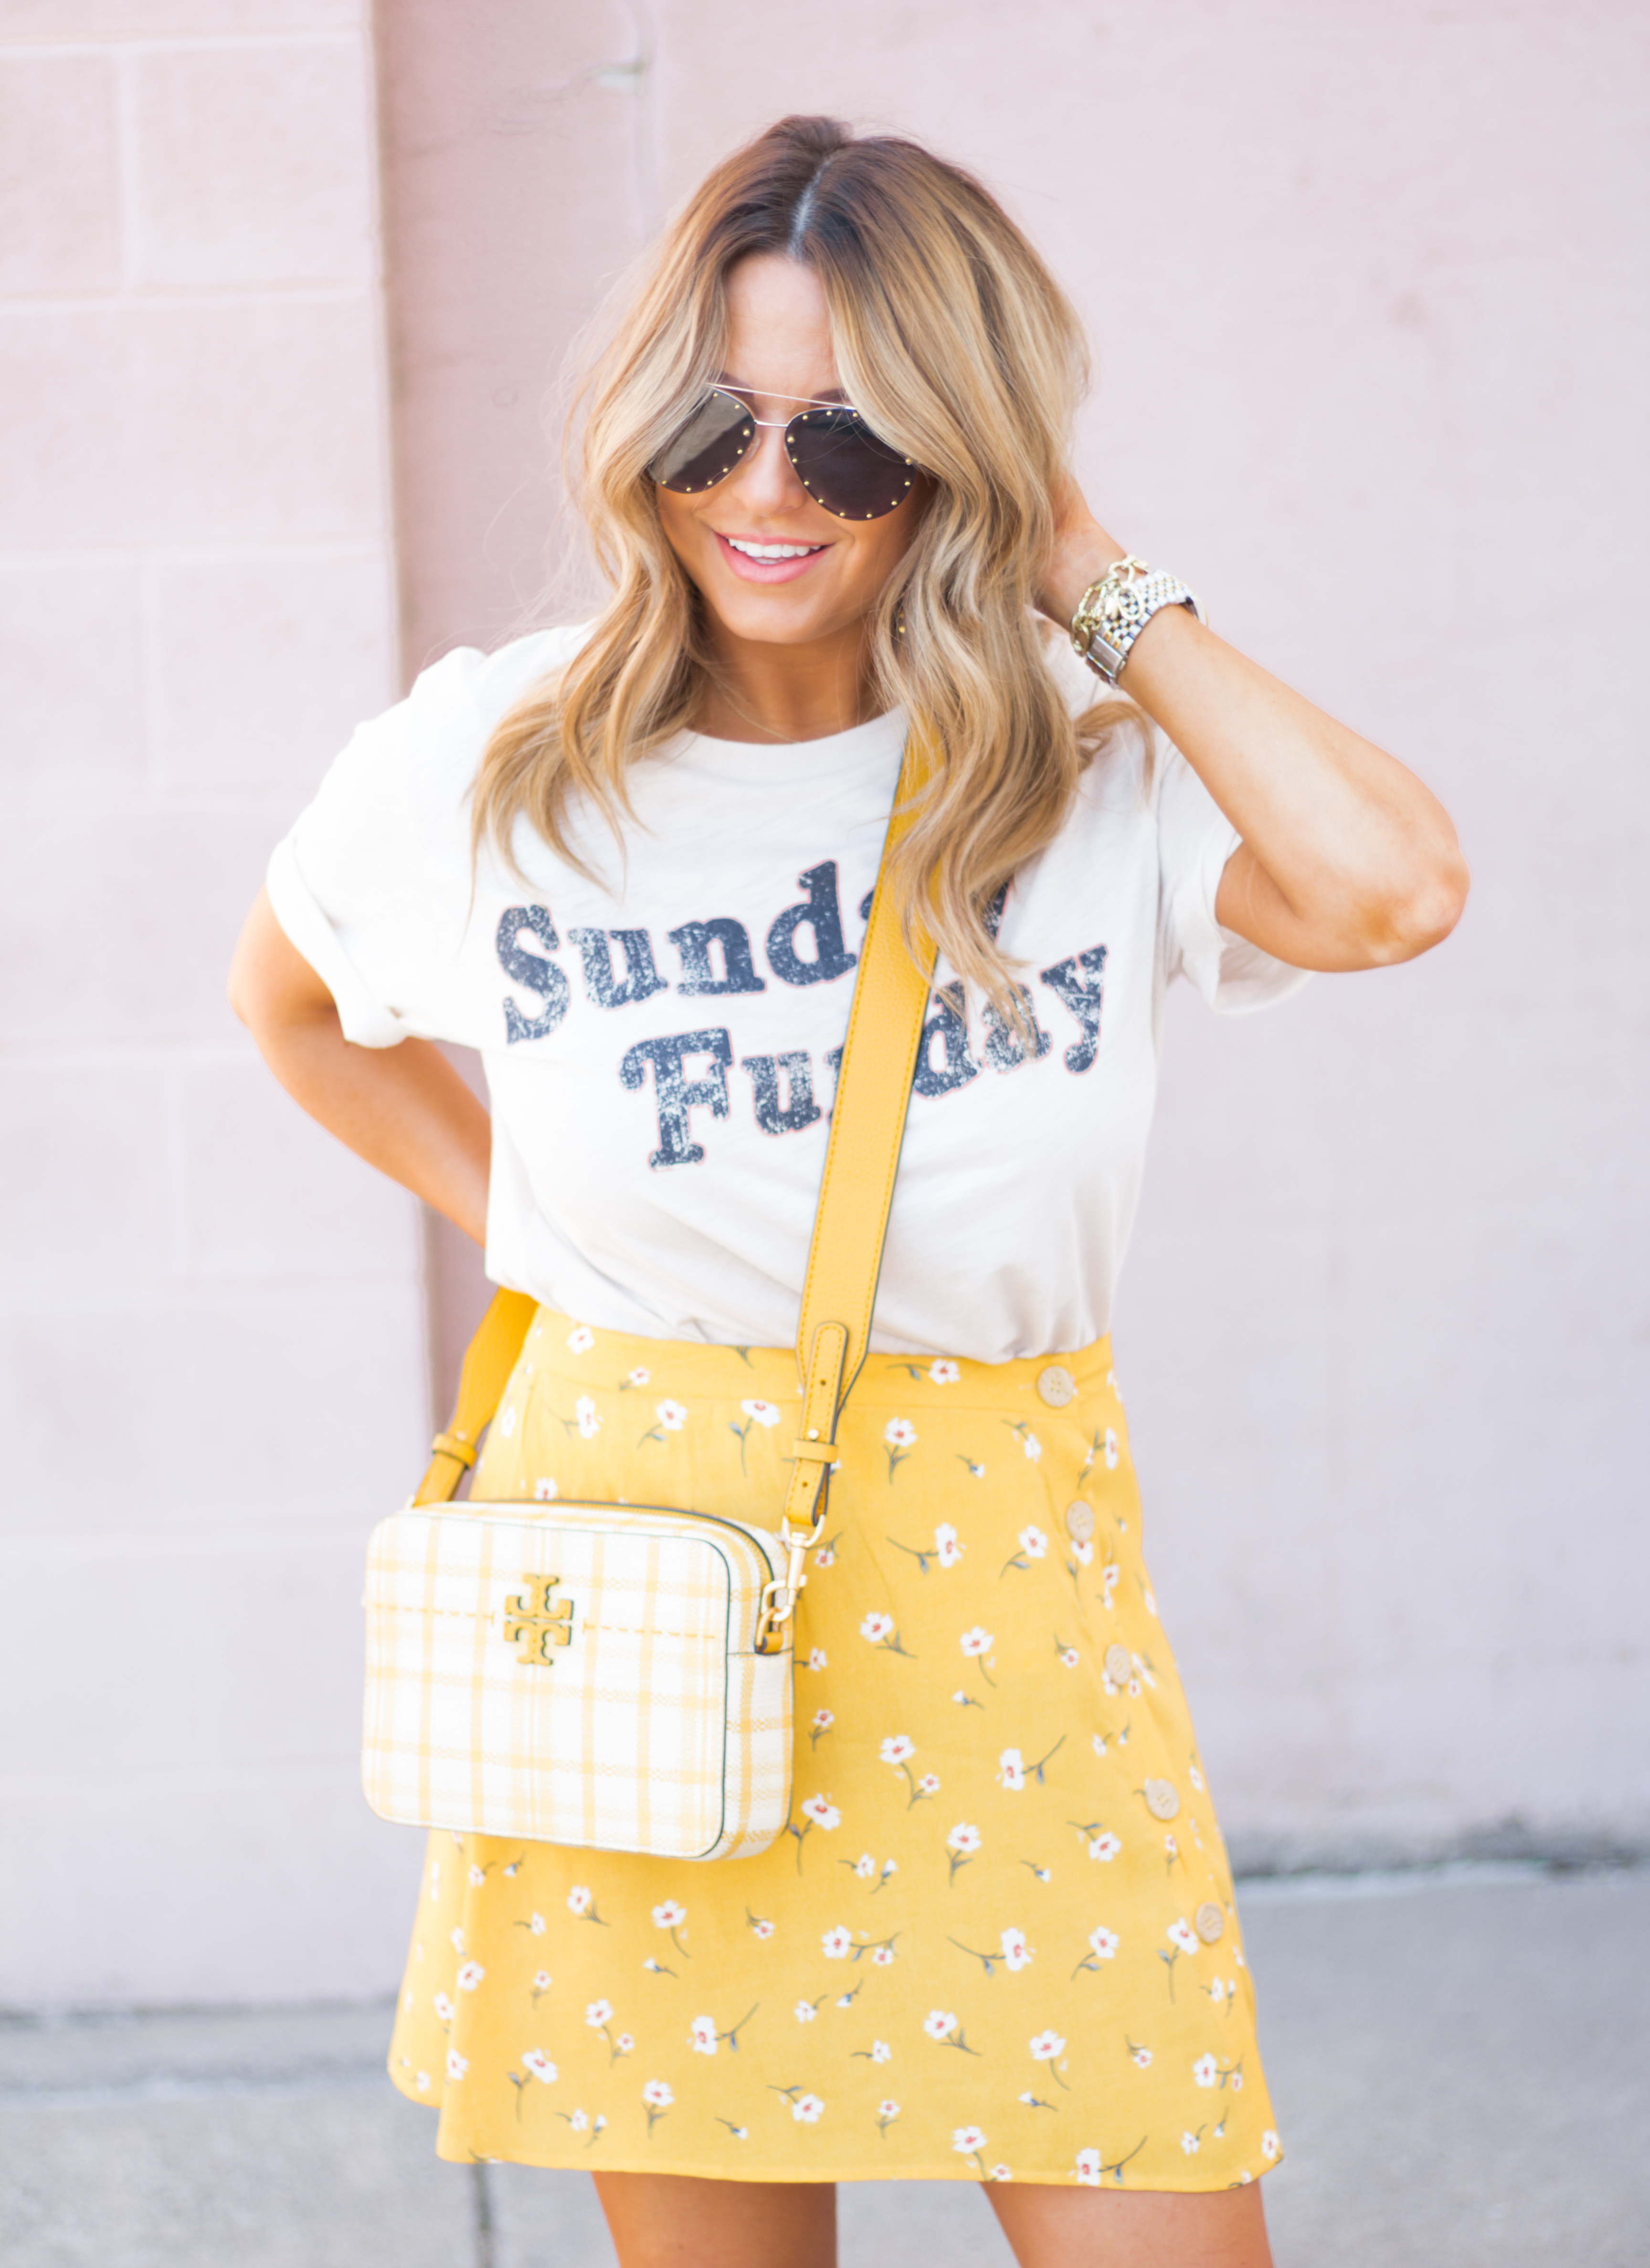 Sunday Funday-Graphic Tee-Floral Skirt-Mini Skirt-Spring Fashion-Spring Style-Tory Burch Purse-Quay Sunglasses-Tan Wedges-Espadrilles-Yellow-Colorful Style-Sabby Style-Women's Fashion-Omaha Blog-Omaha Blogger-5